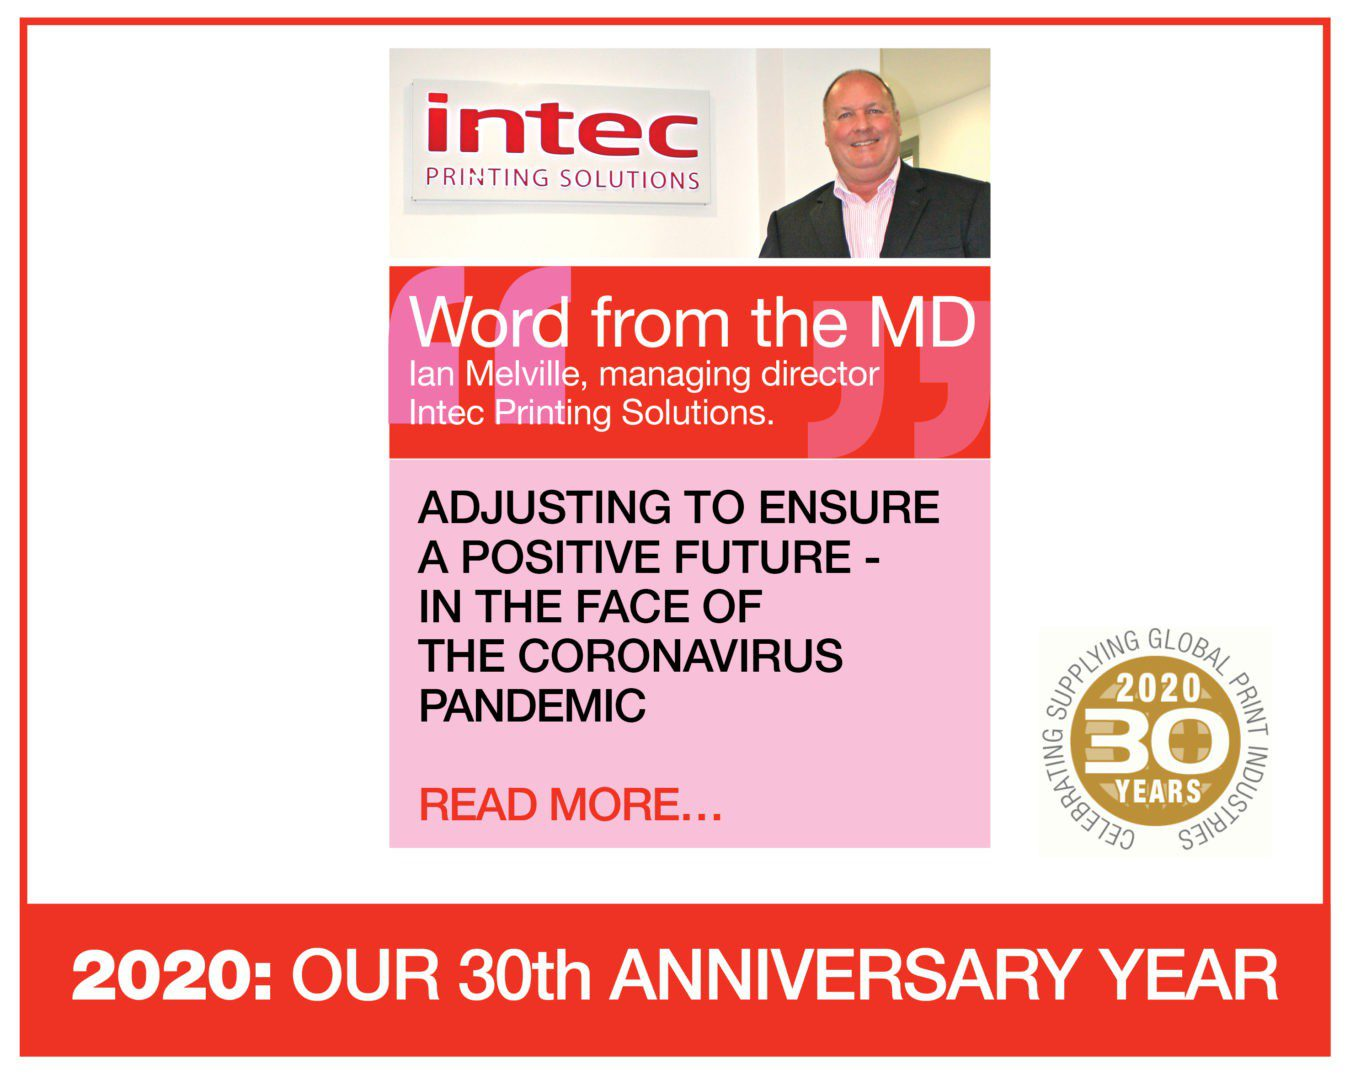 Intec MD speaks about Intec bright future in the face of the coronavirus pandemic